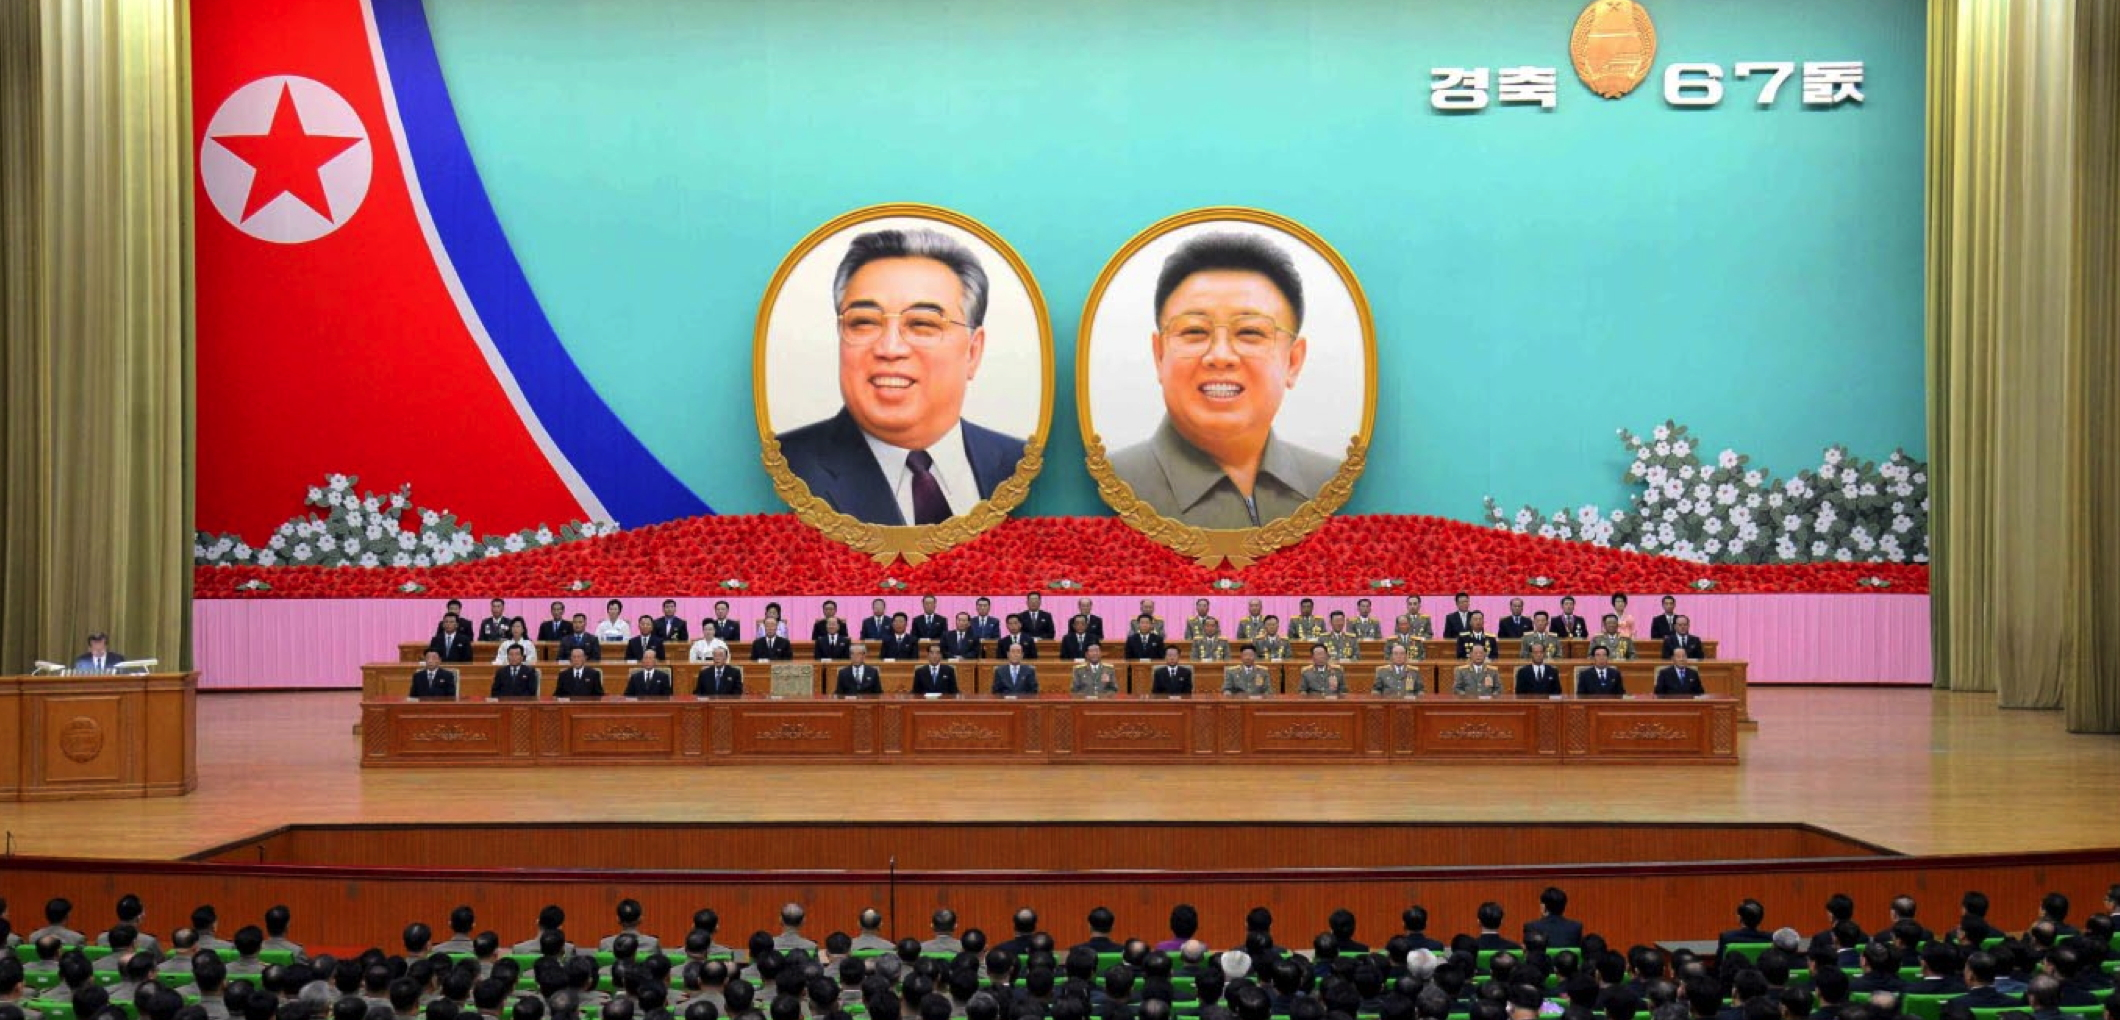 View of the platform at the People's Palace of Culture in Pyongyang on September 8, 2015, at a meeting held to mark the 67th anniversary of the foundation of the DPRK (Photo: Rodong Sinmun).